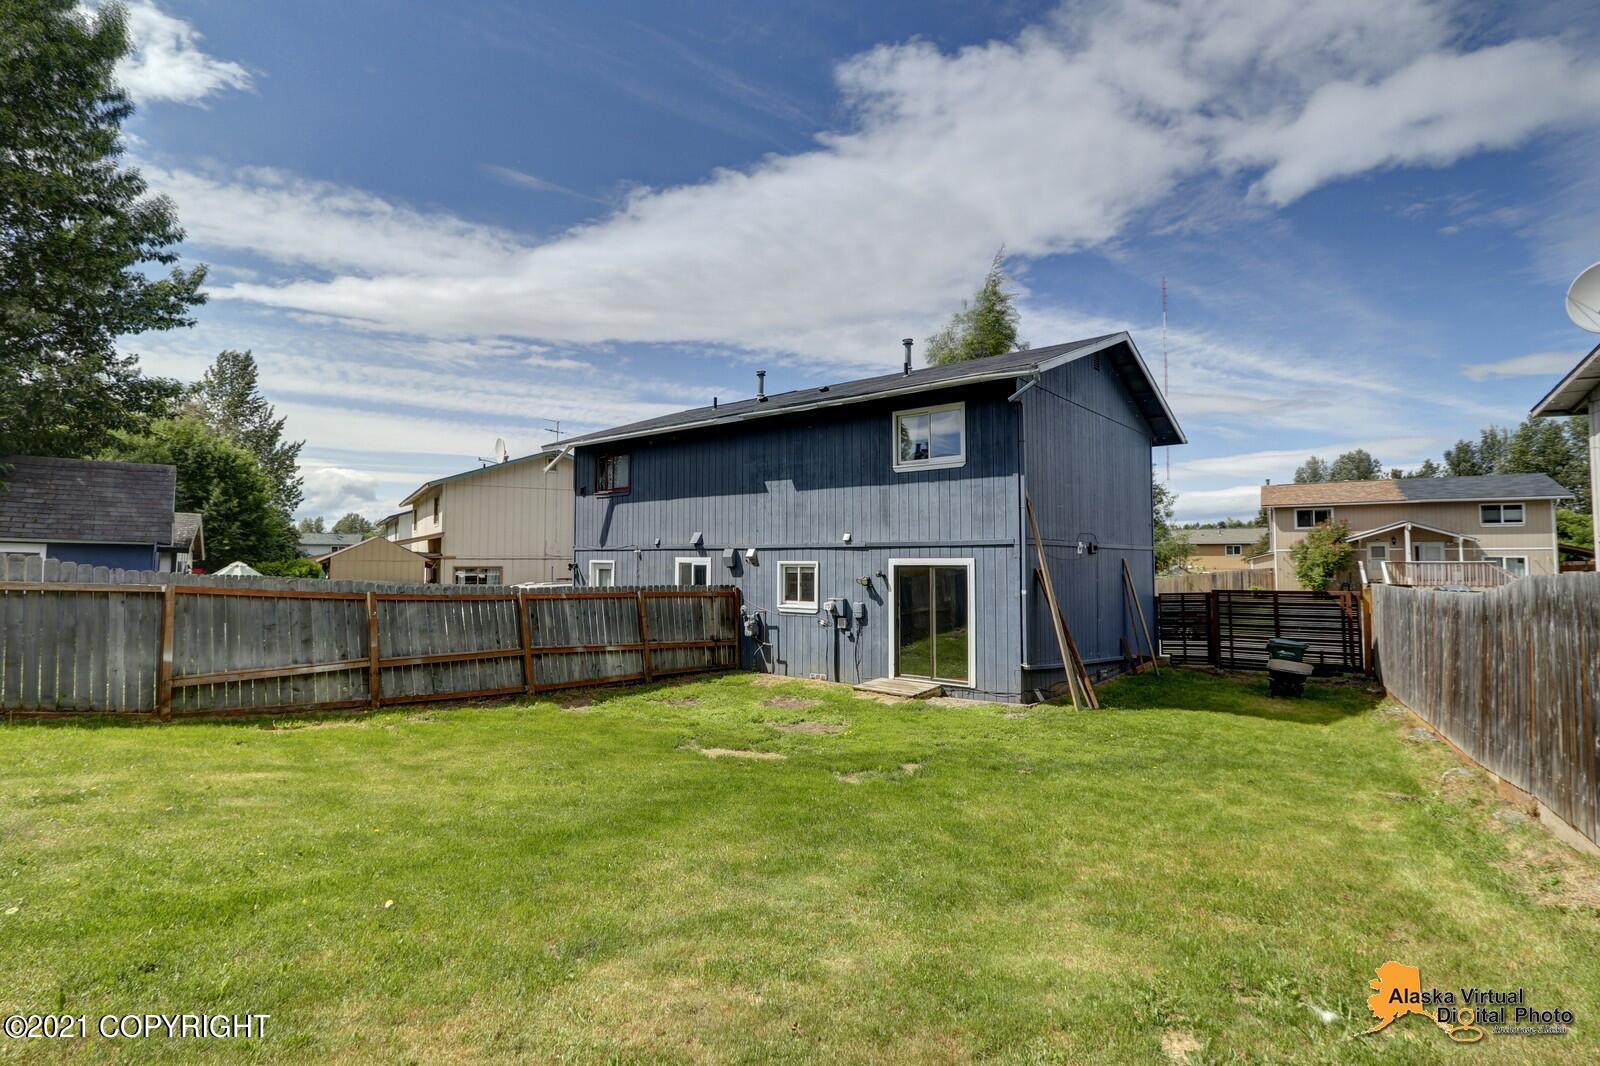 6221 Gross, Anchorage